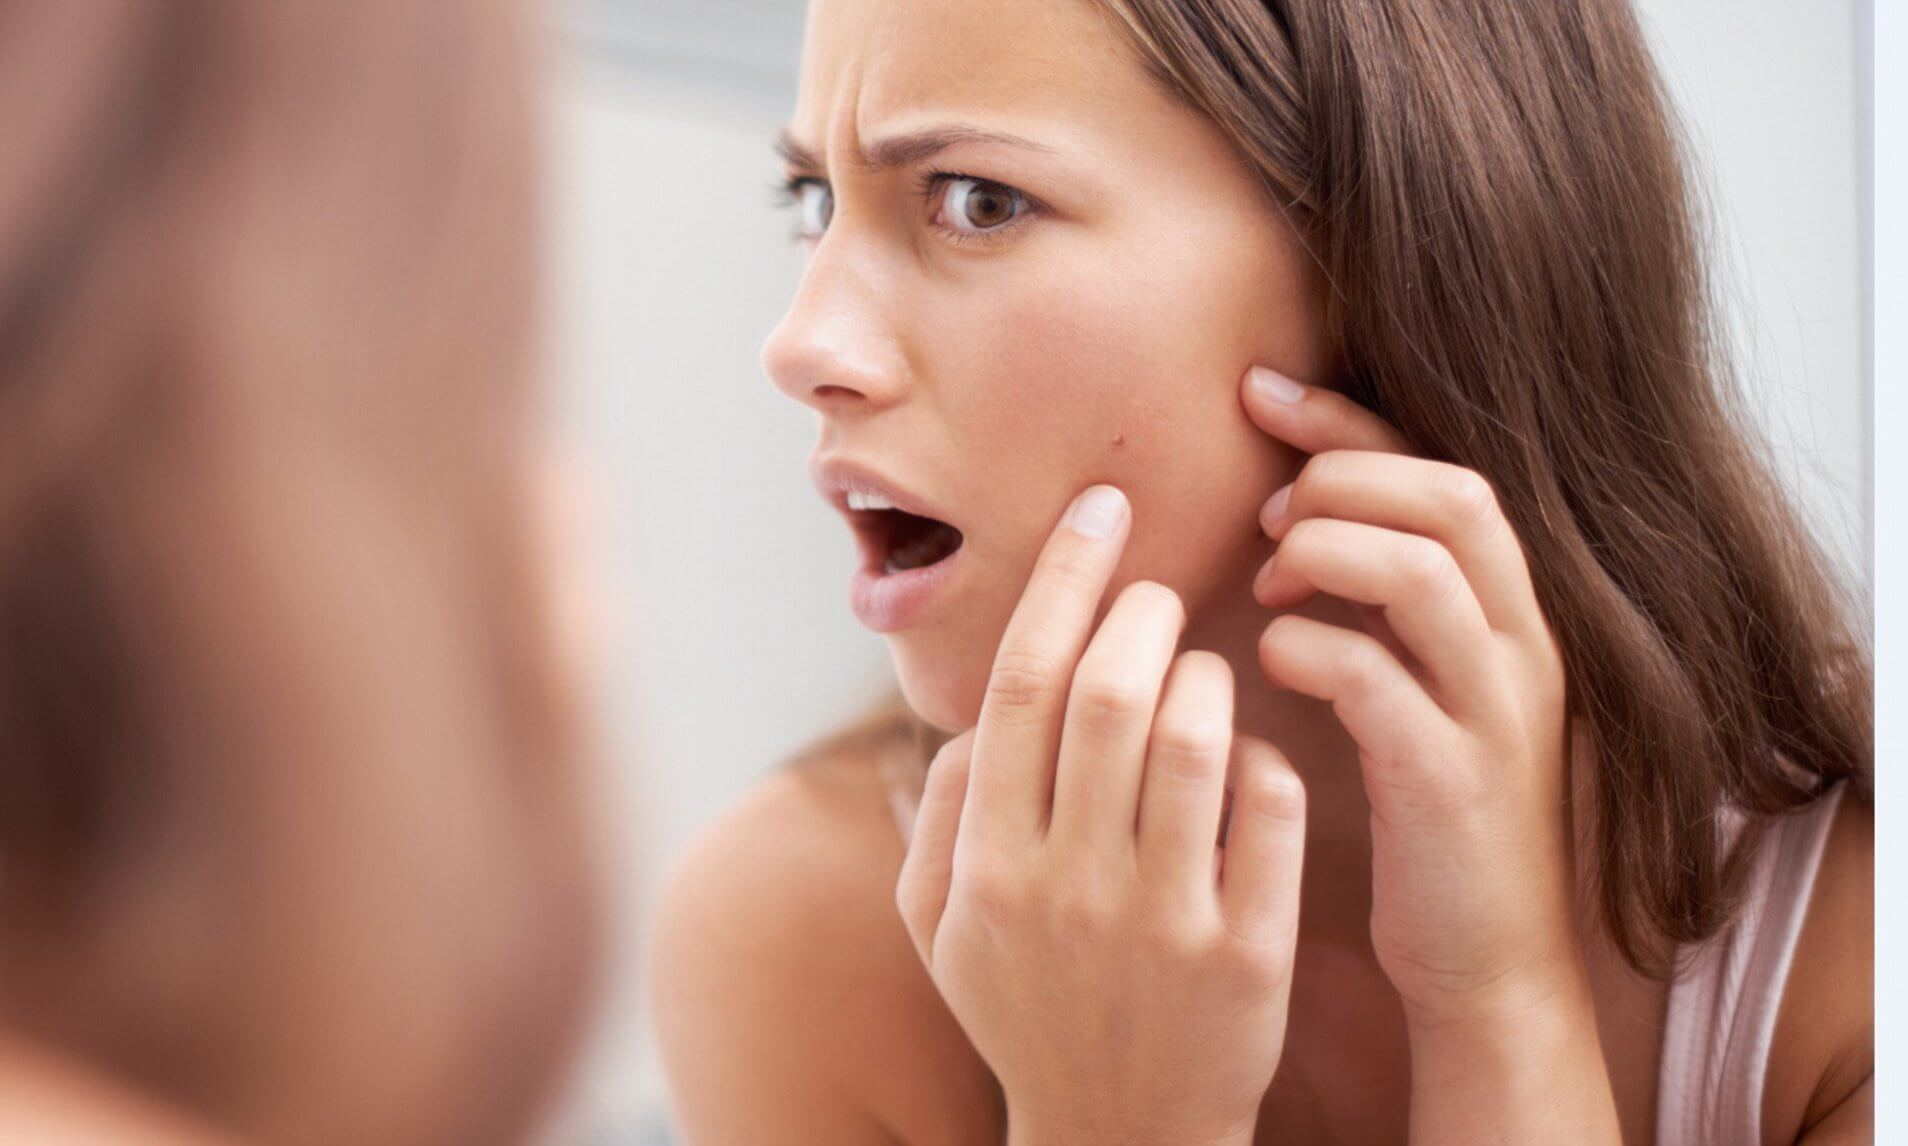 10 Surprising Factors That May Trigger an Acne Outbreak